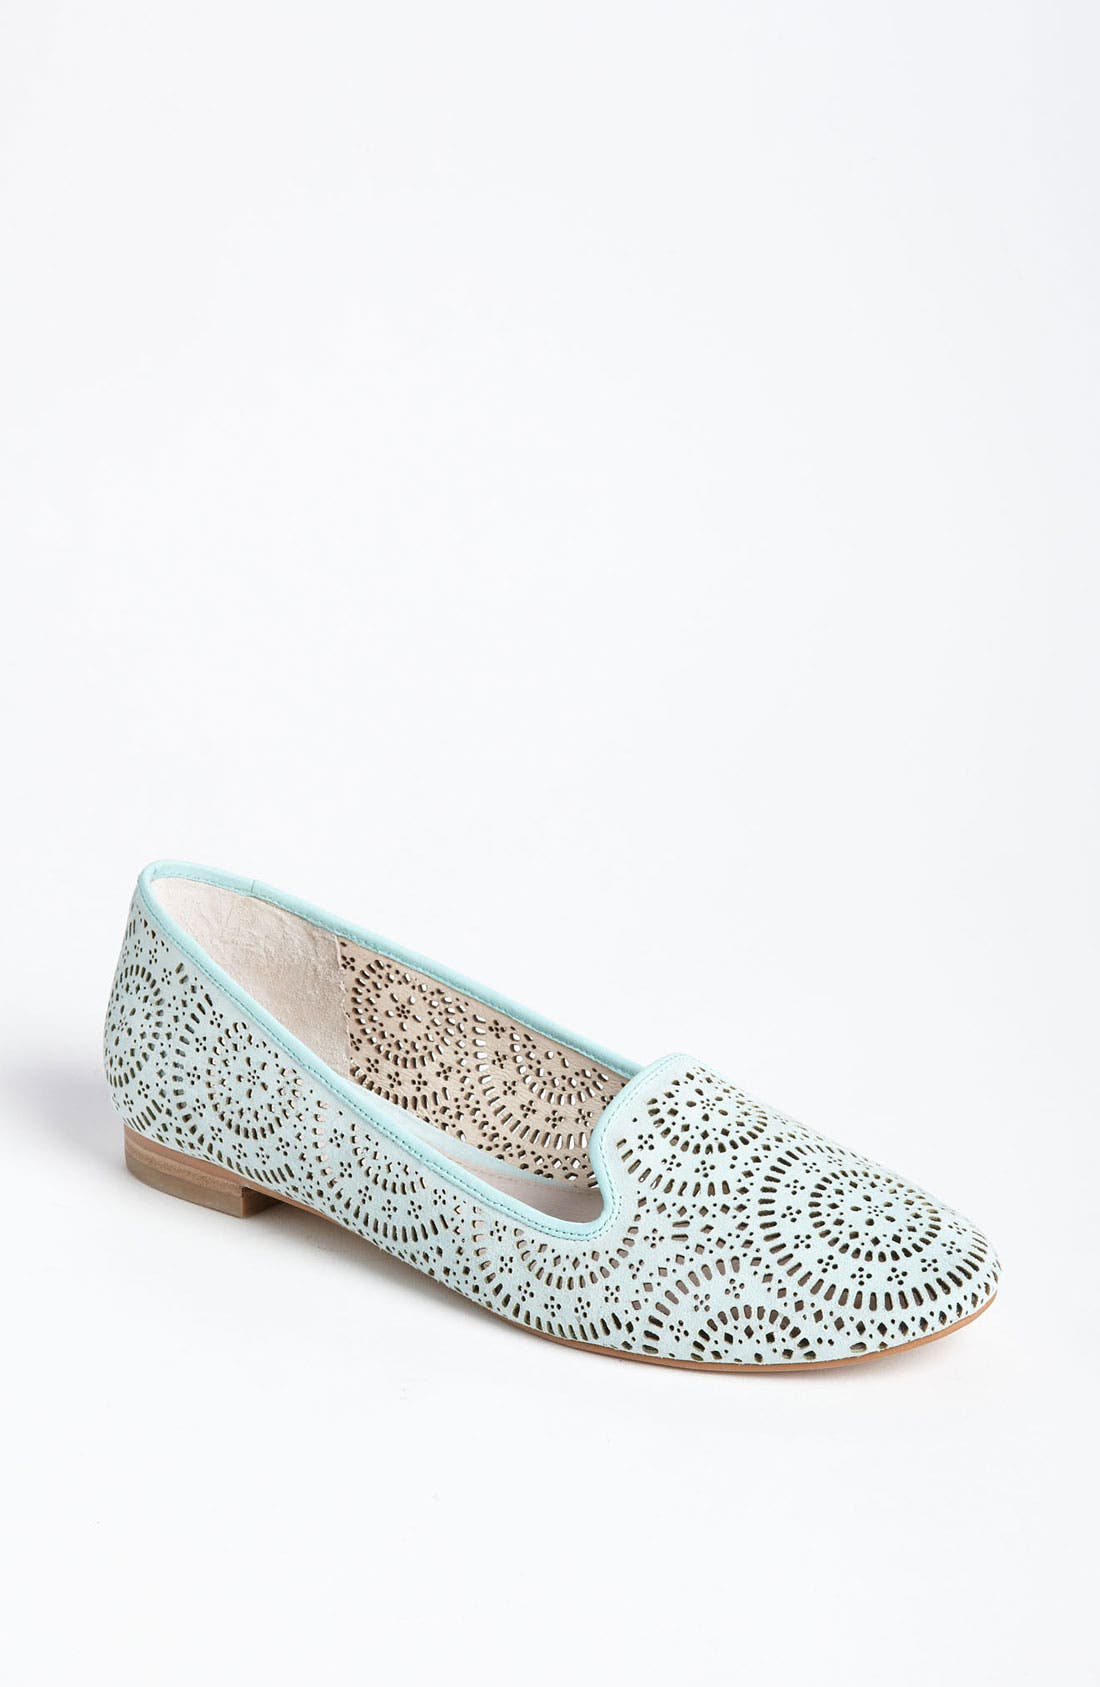 Alternate Image 1 Selected - Vince Camuto 'Lancaster' Flat (Nordstrom Exclusive)